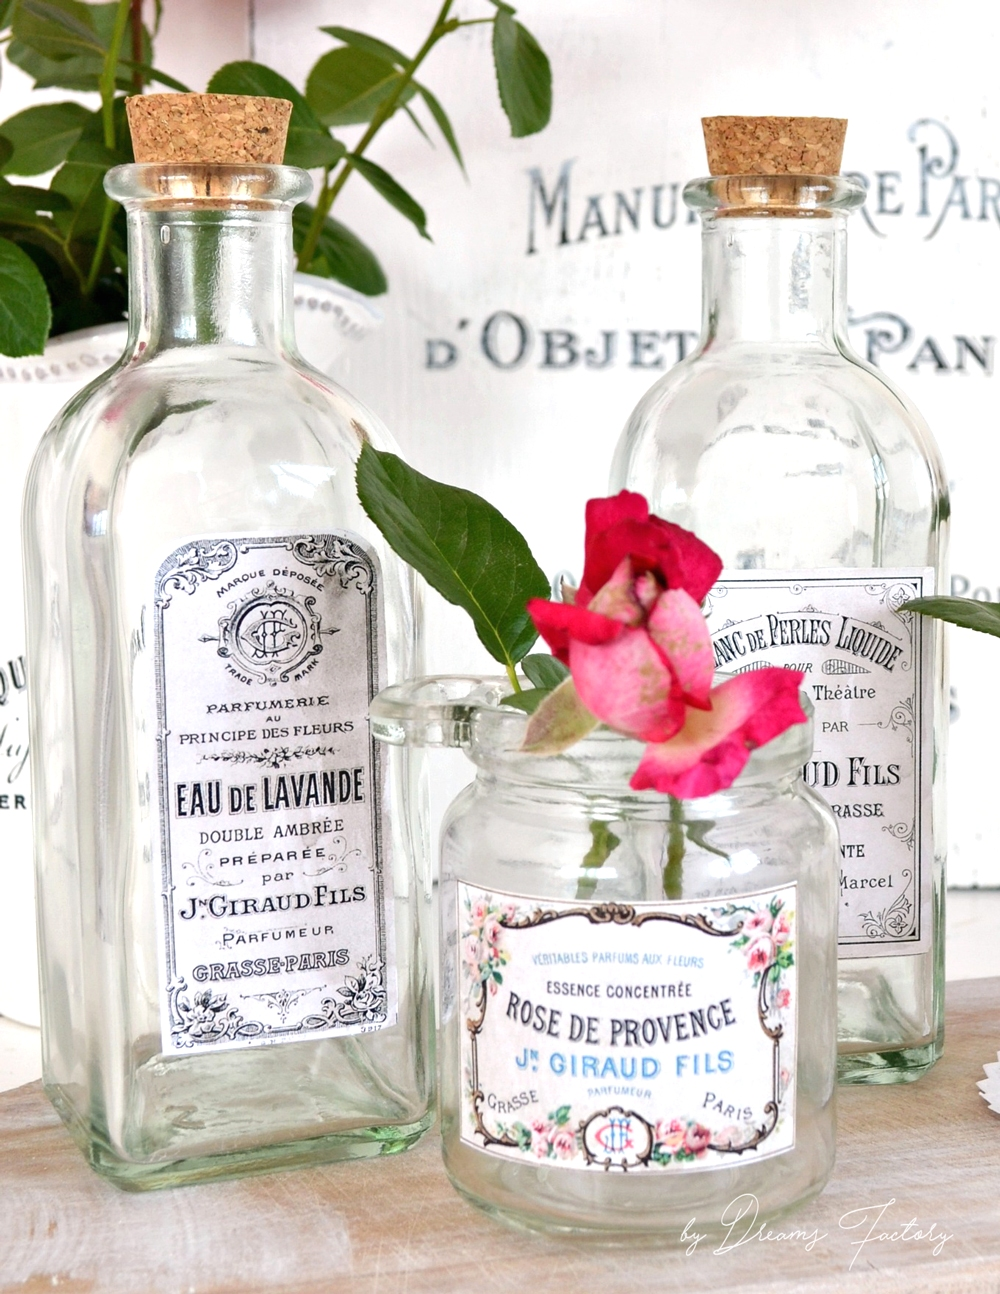 DIY Vintage French Apothecary Jars and Bottles - by Dreams Factory